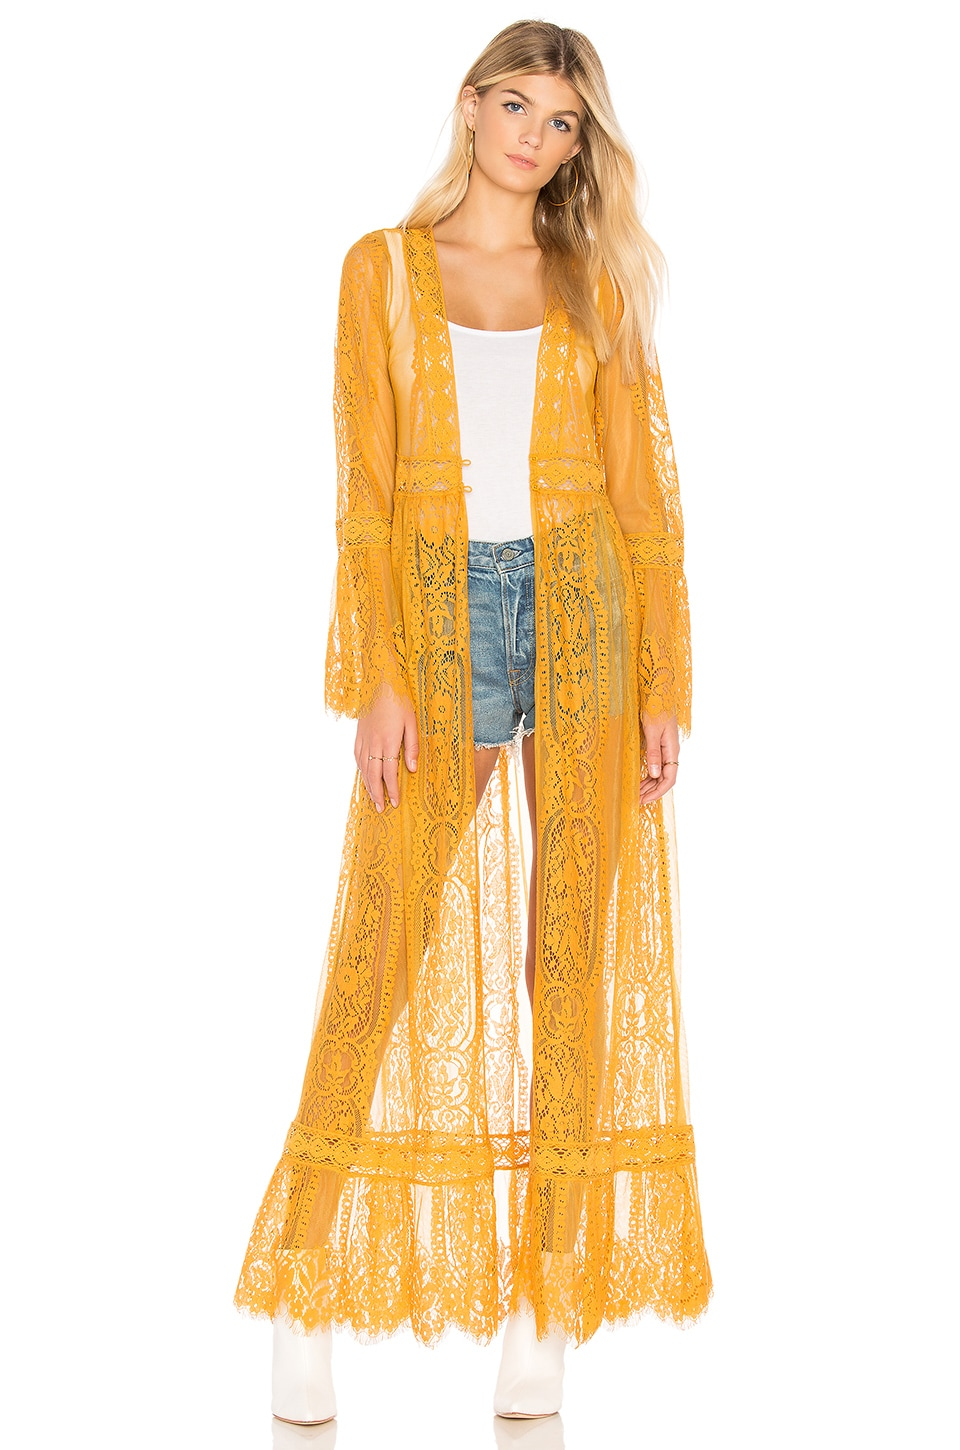 Band of Gypsies Lace Bell Sleeve Duster in Mustard